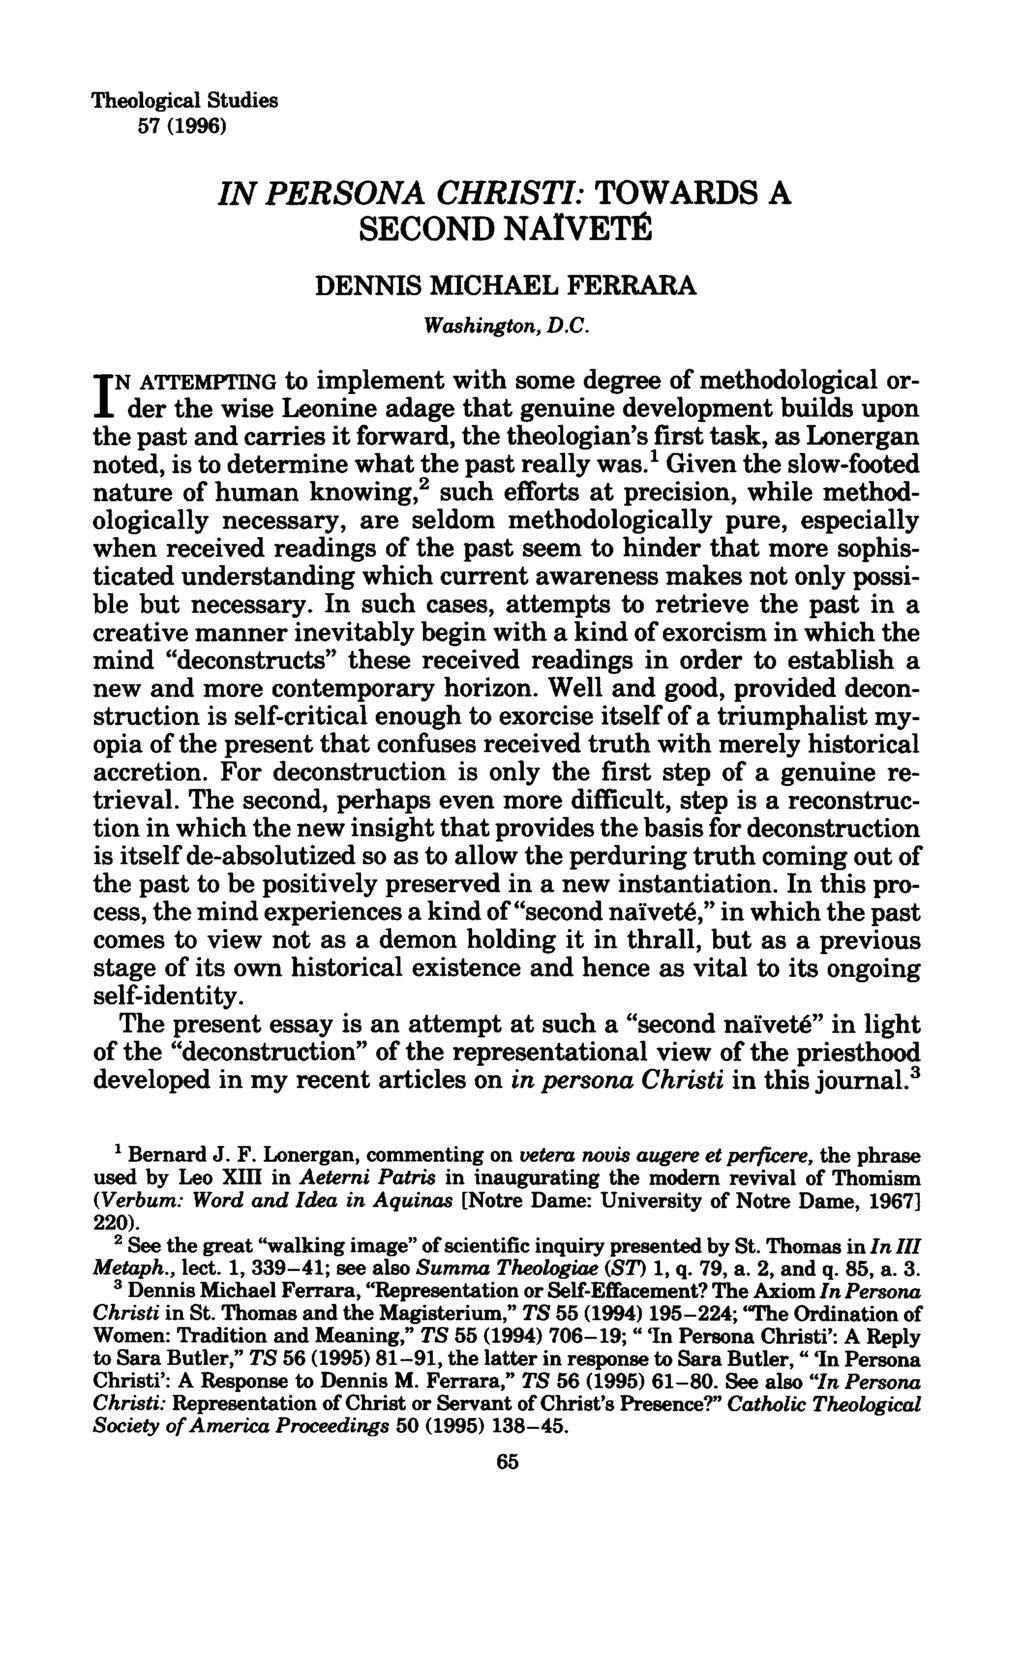 Theological Studies 57 (1996) IN PERSONA CH